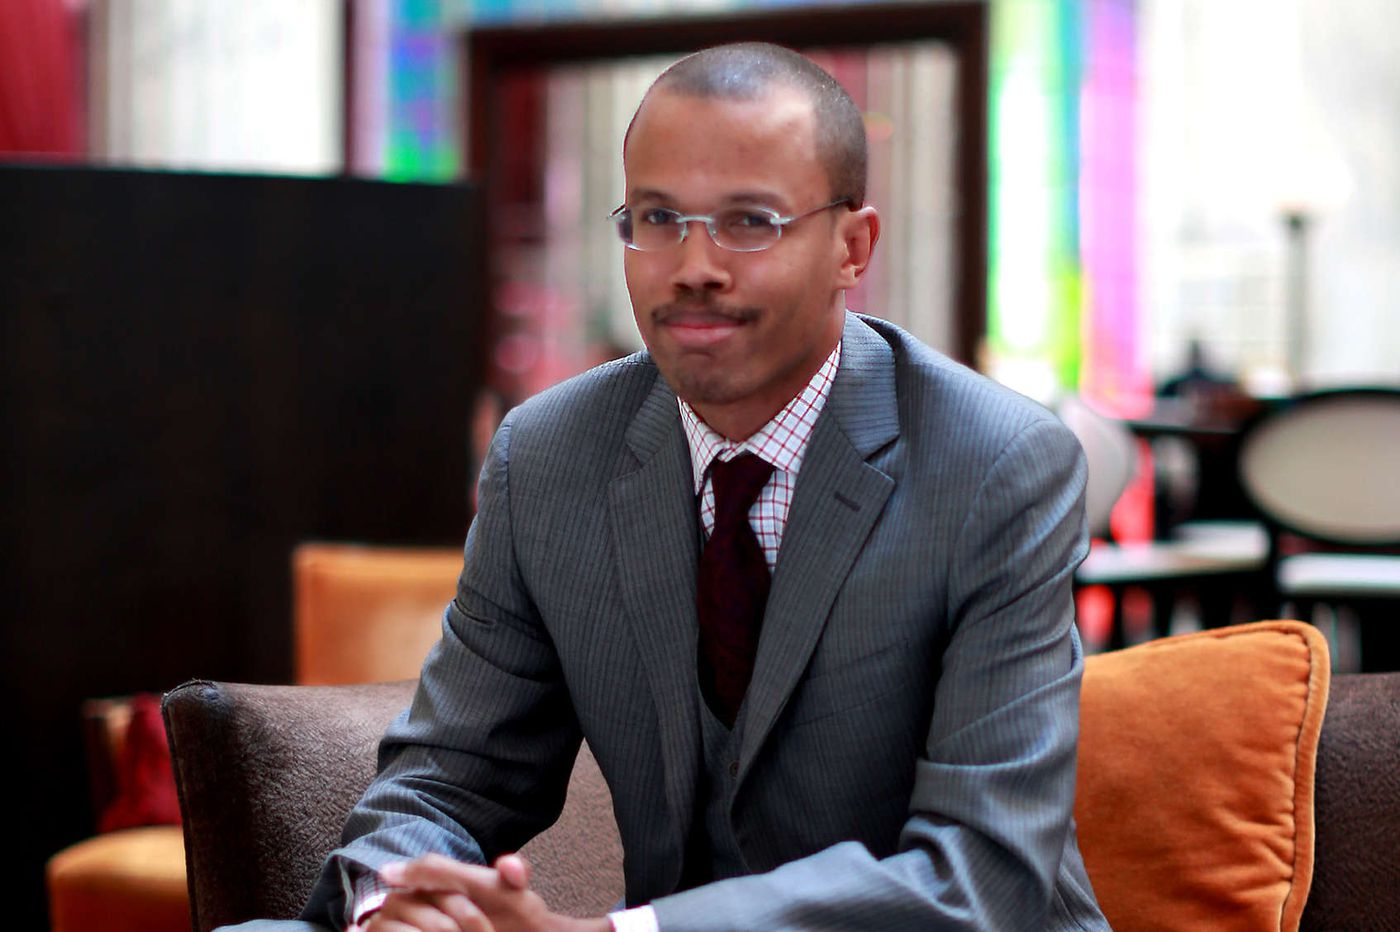 Guess who's home from federal prison in time for the holidays? Chaka Fattah Jr. | Jenice Armstrong